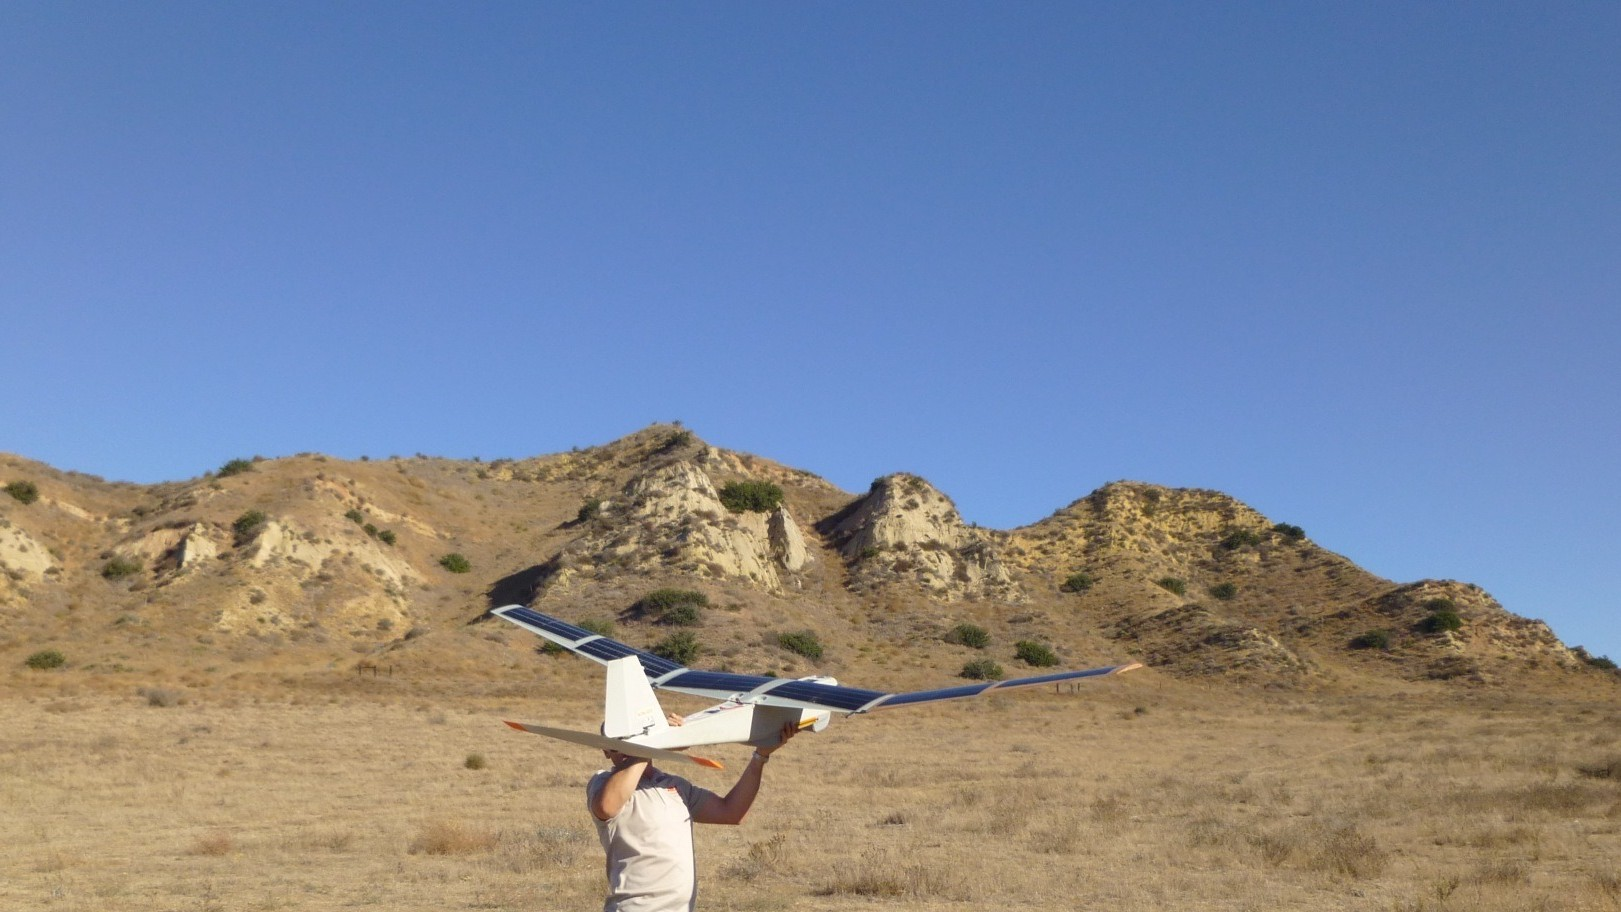 Finally, Here's Every Organization Allowed to Fly Drones in the US